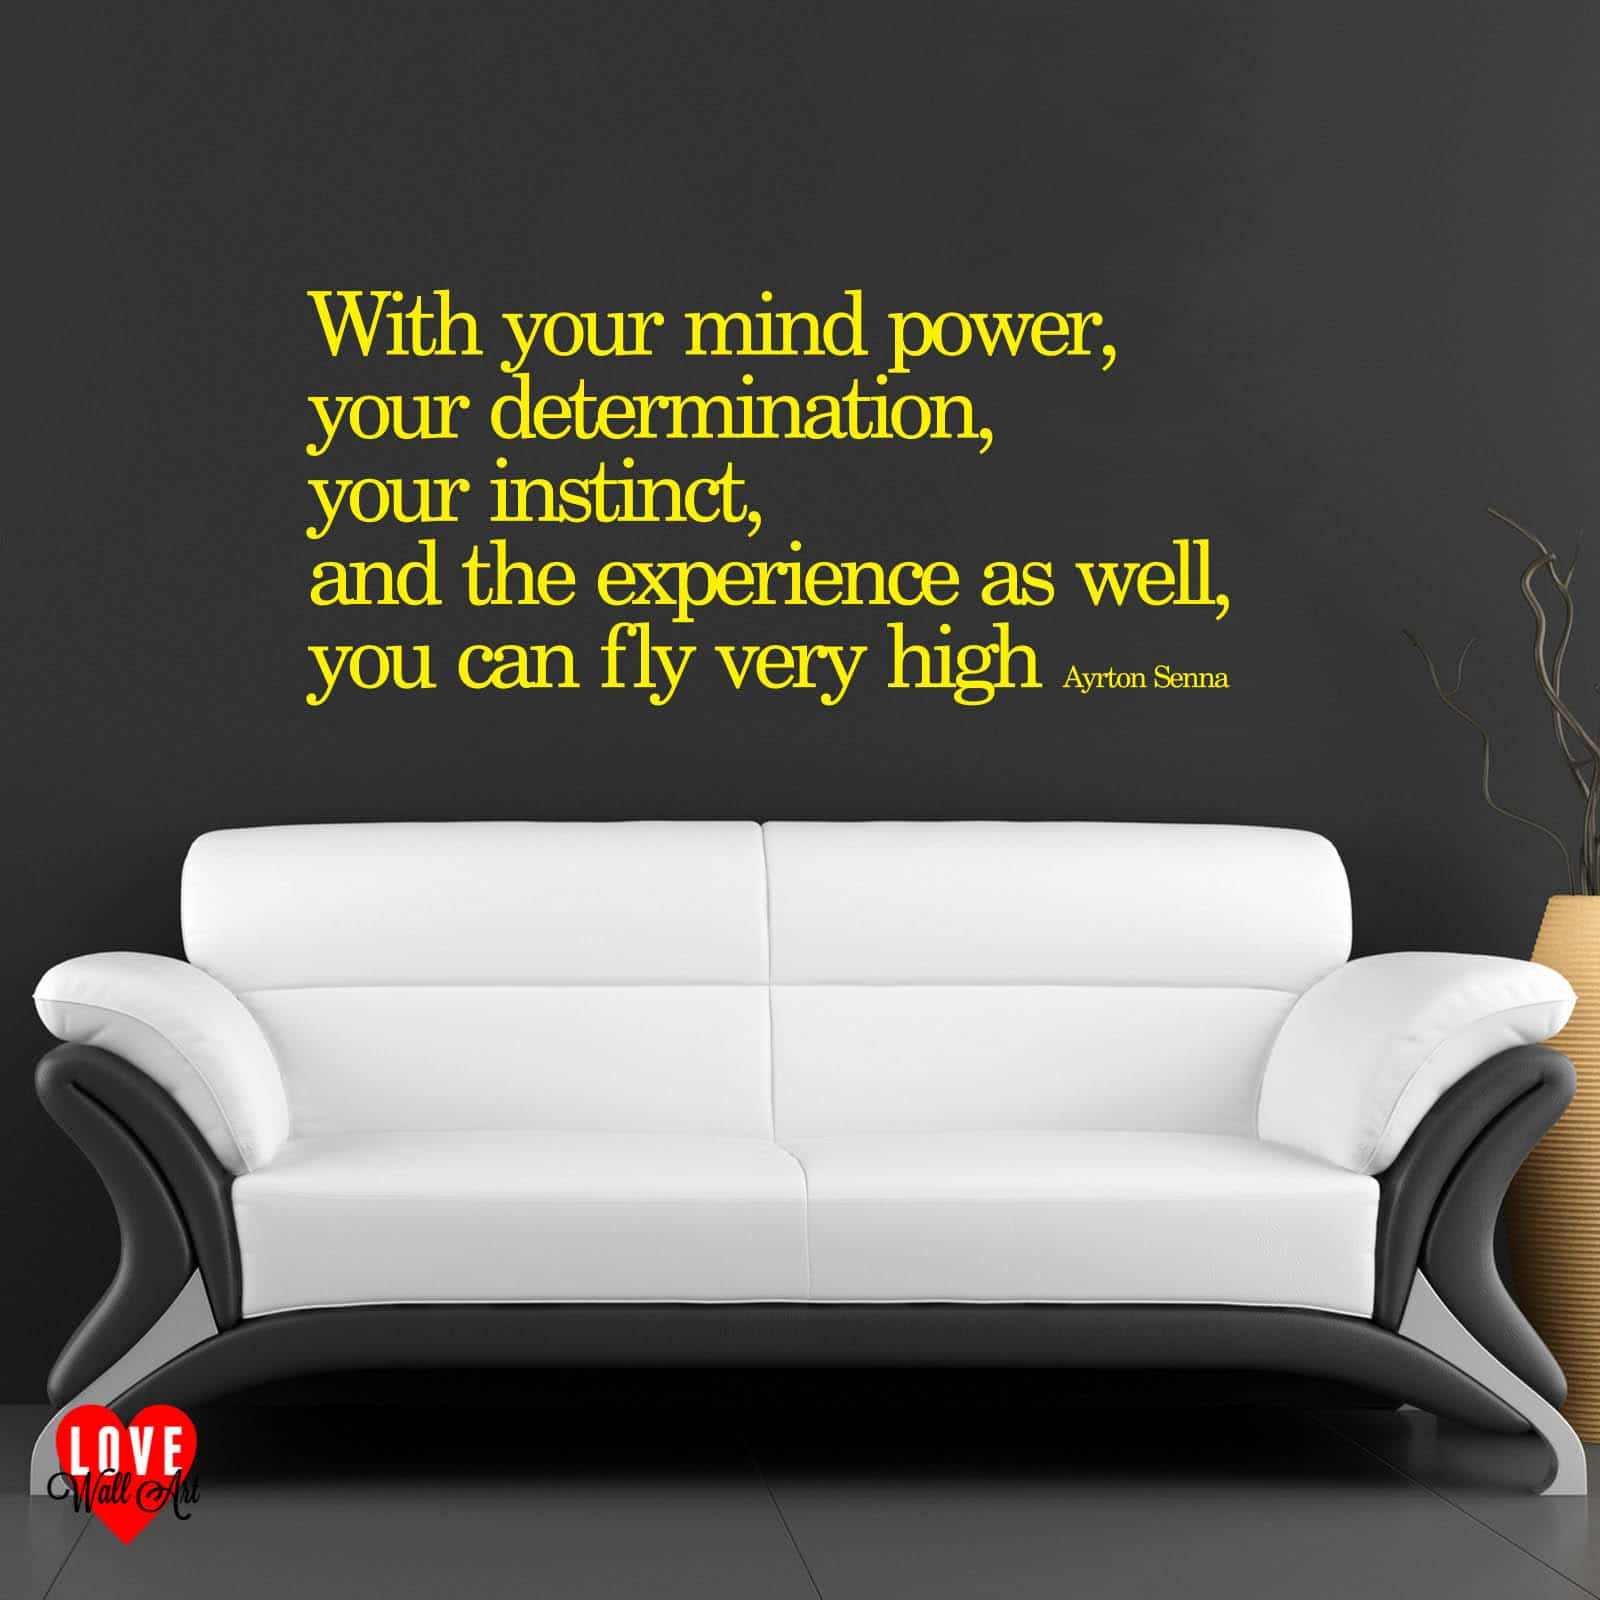 Wall Sticker Quotes Uk Ayrton Senna Quote With Your Mind Power Wall Art Sticker